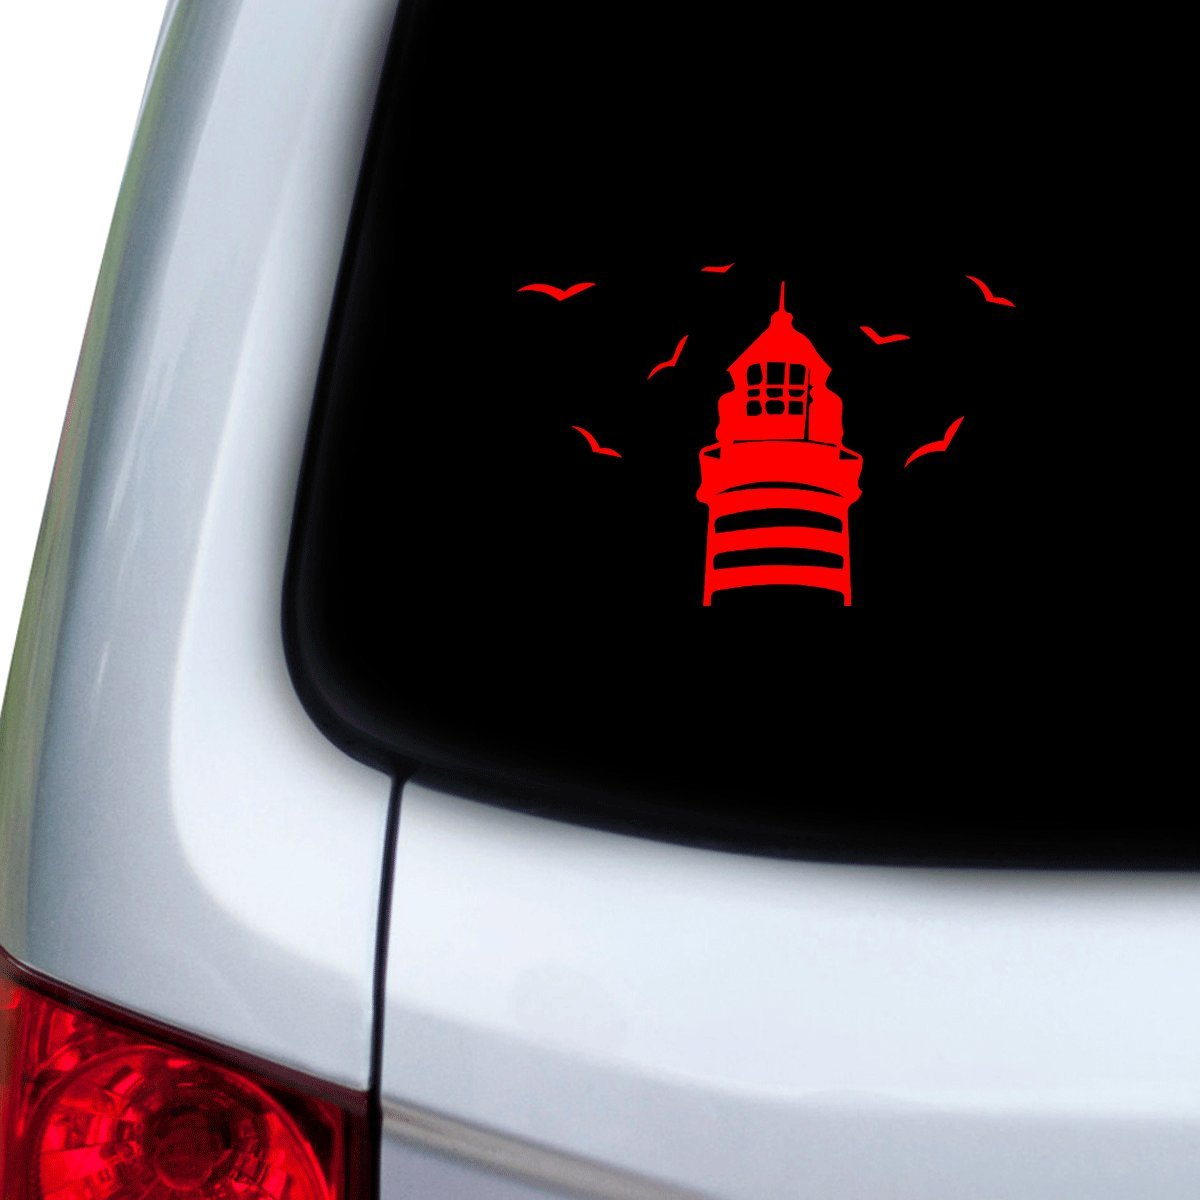 Red StickAny Car and Auto Decal Series Lighthouse Birds Flying Sticker for Windows Doors Hoods